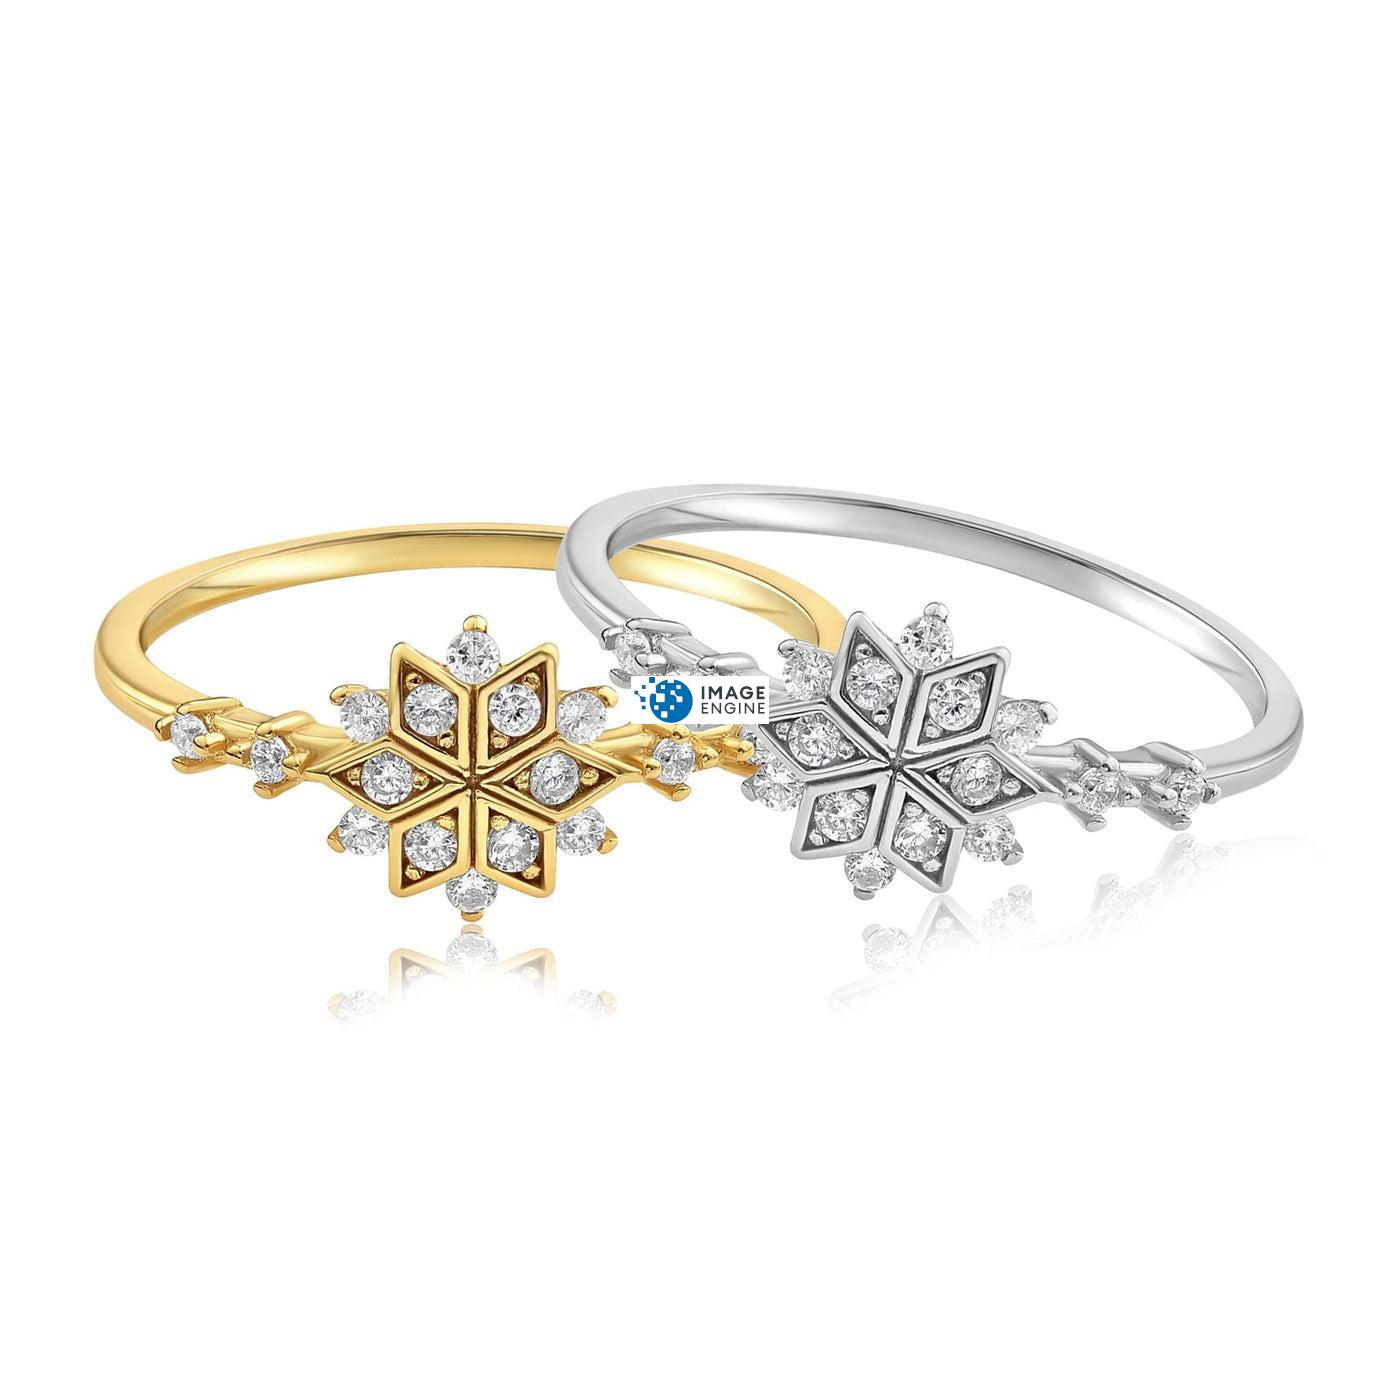 Sophia Snowflake Ring - Front View Side by Side - 18K Yellow Gold Vermeil and 925 Sterling Silver